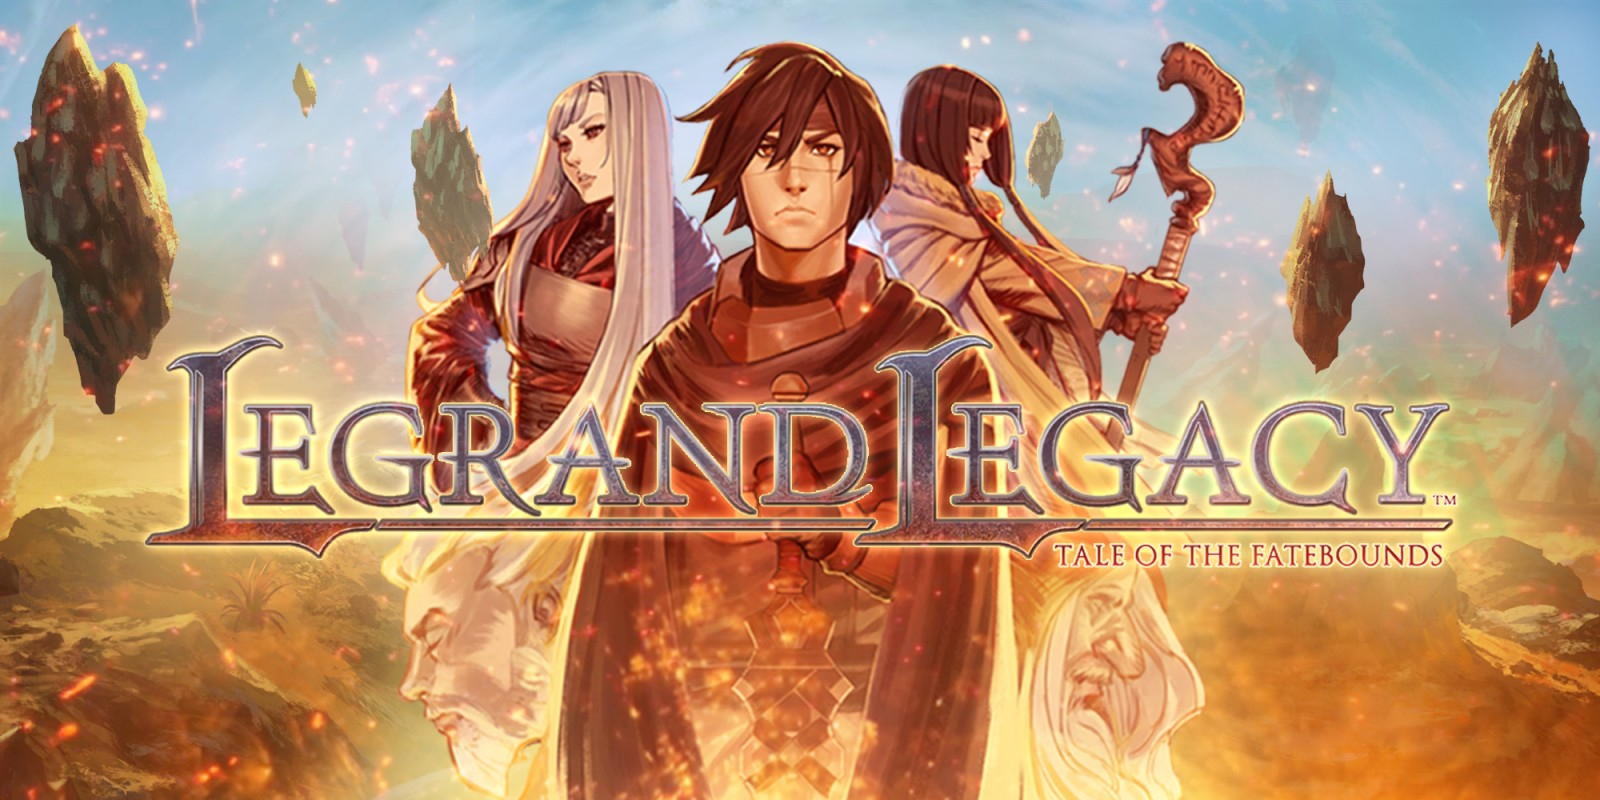 Legrand Legacy: Tale of the Fatebounds Masthead